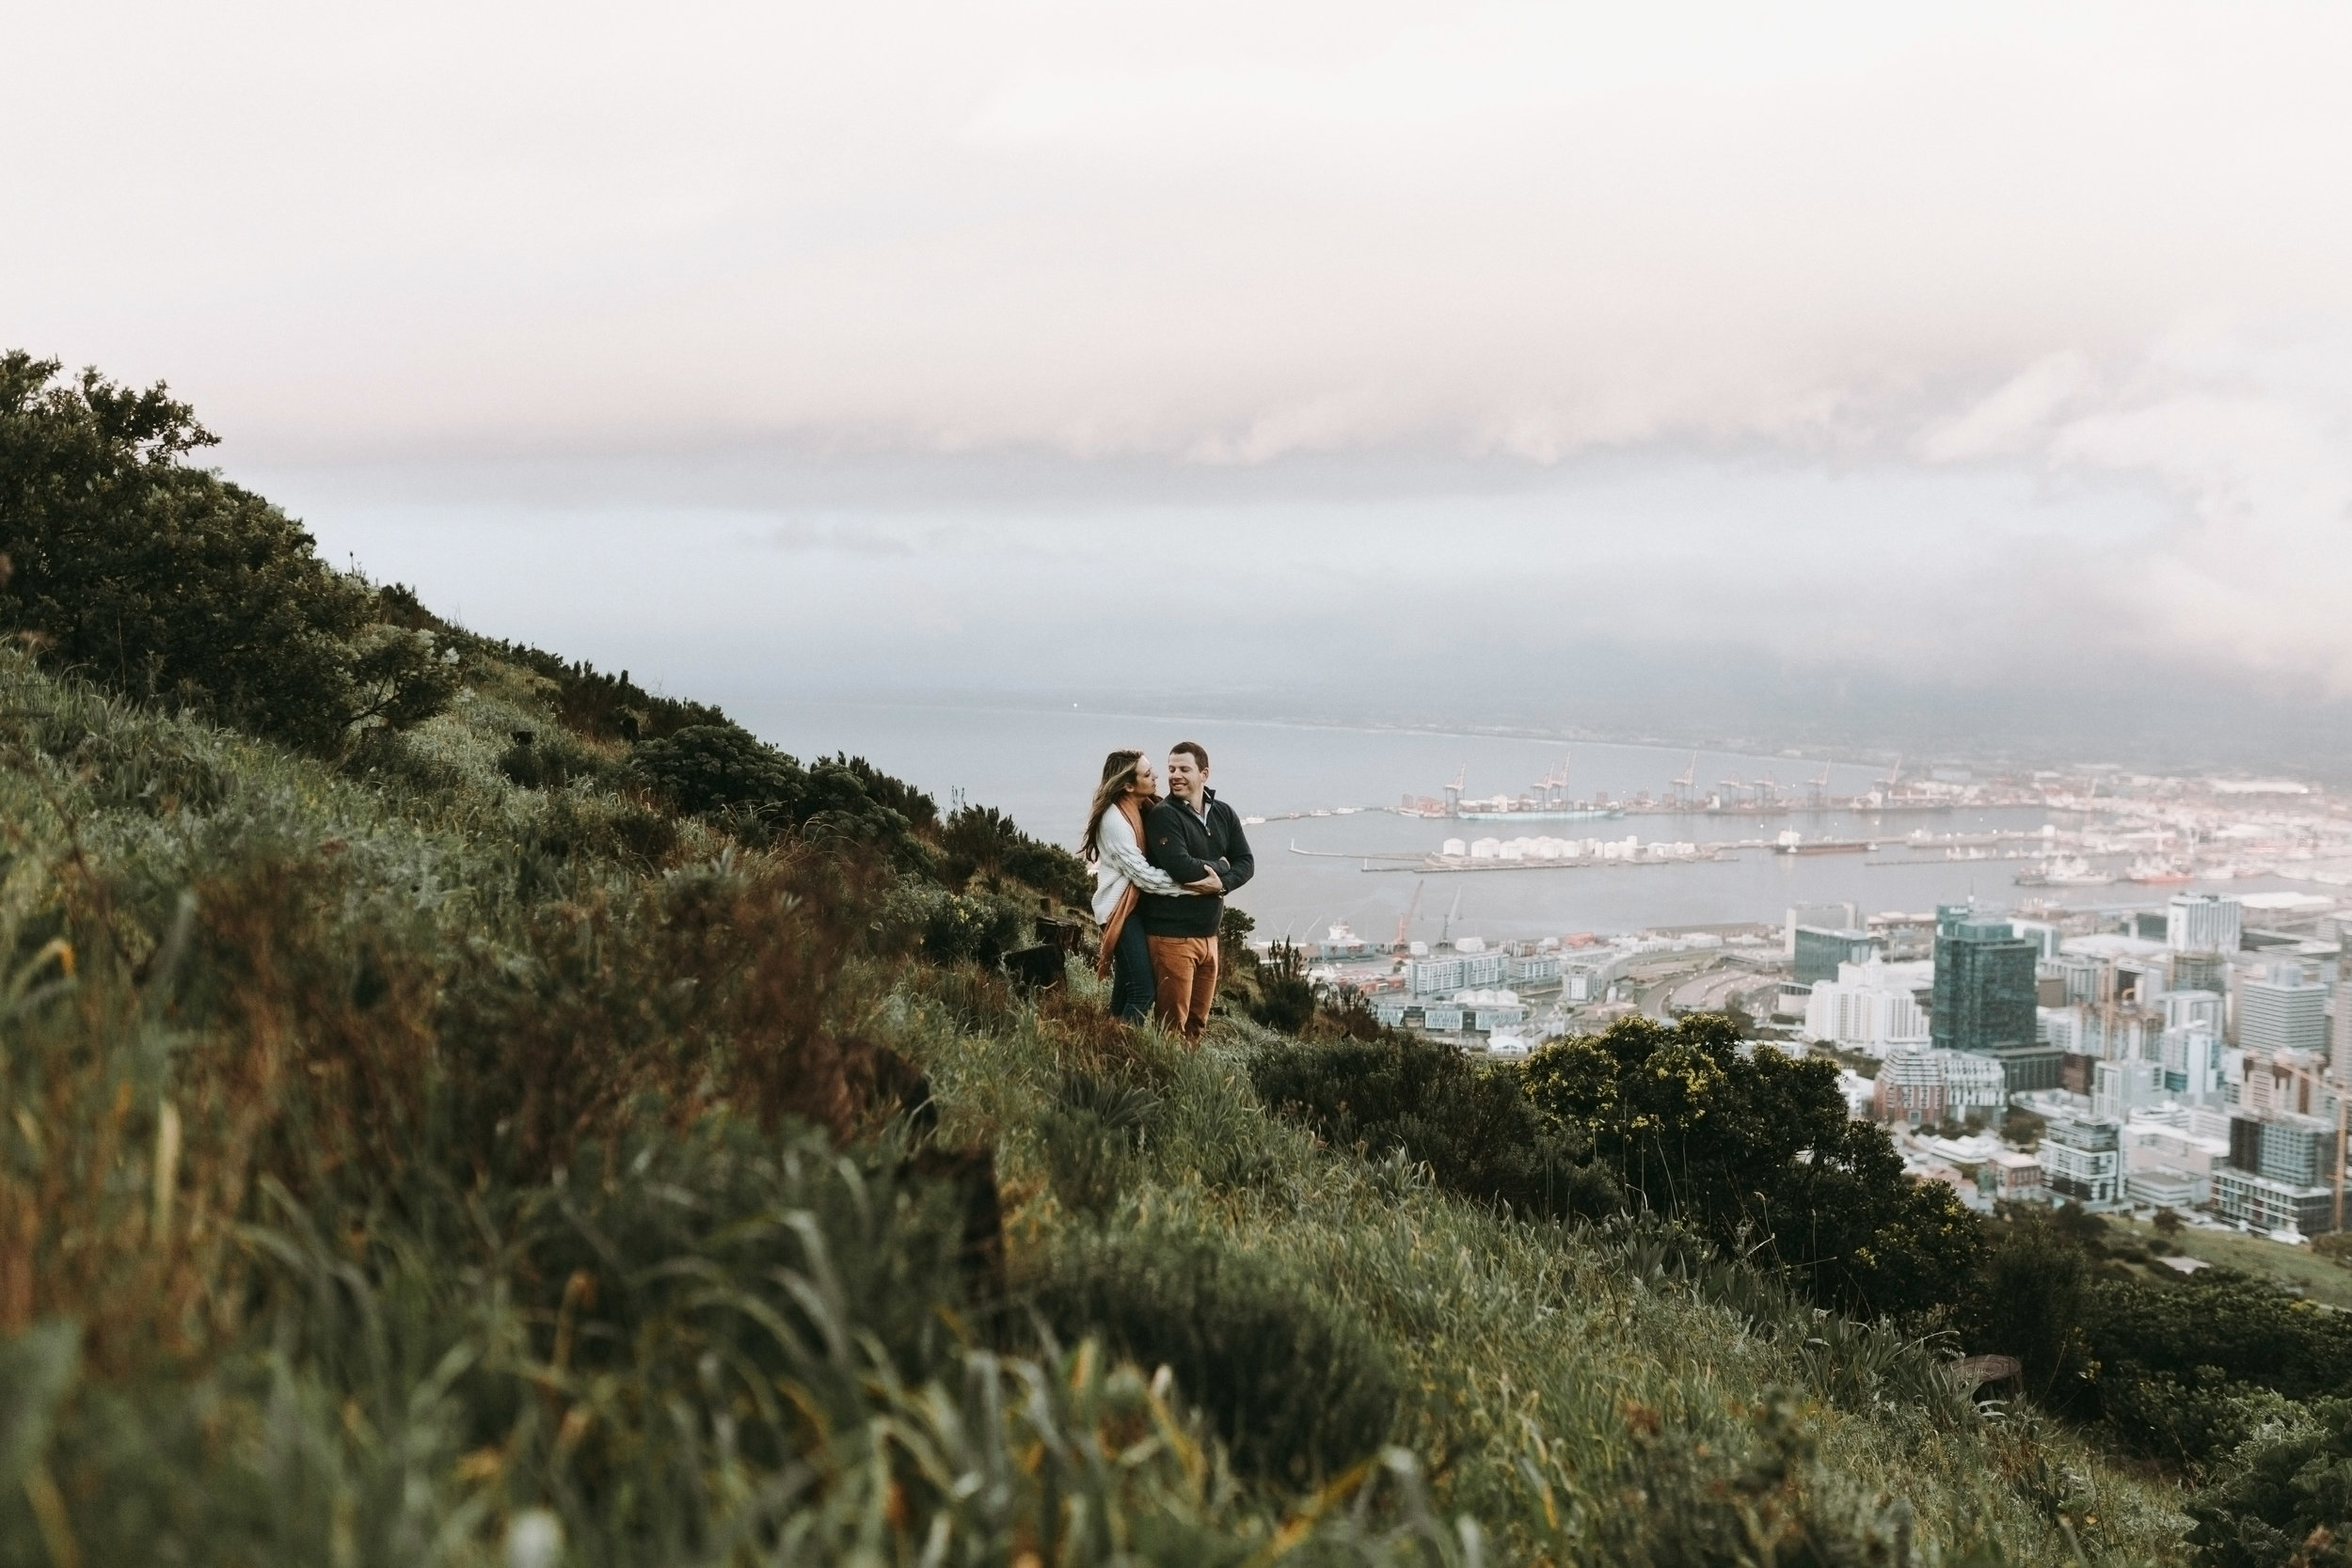 Cape Town Blanche B PhotographyIan & Carrie9 (4).JPG